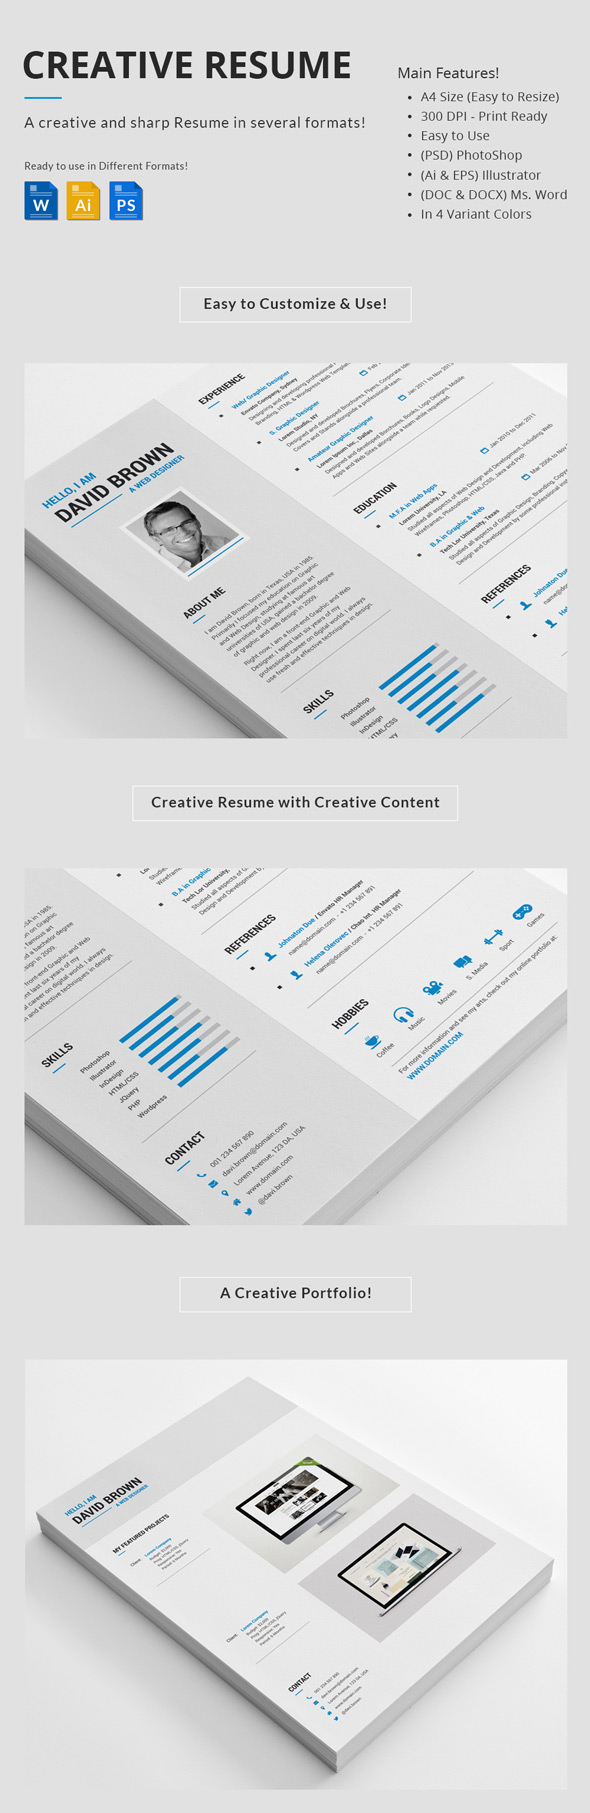 Resume Creative Resume Formats 25 creative resume templates to land a new job in style professional set